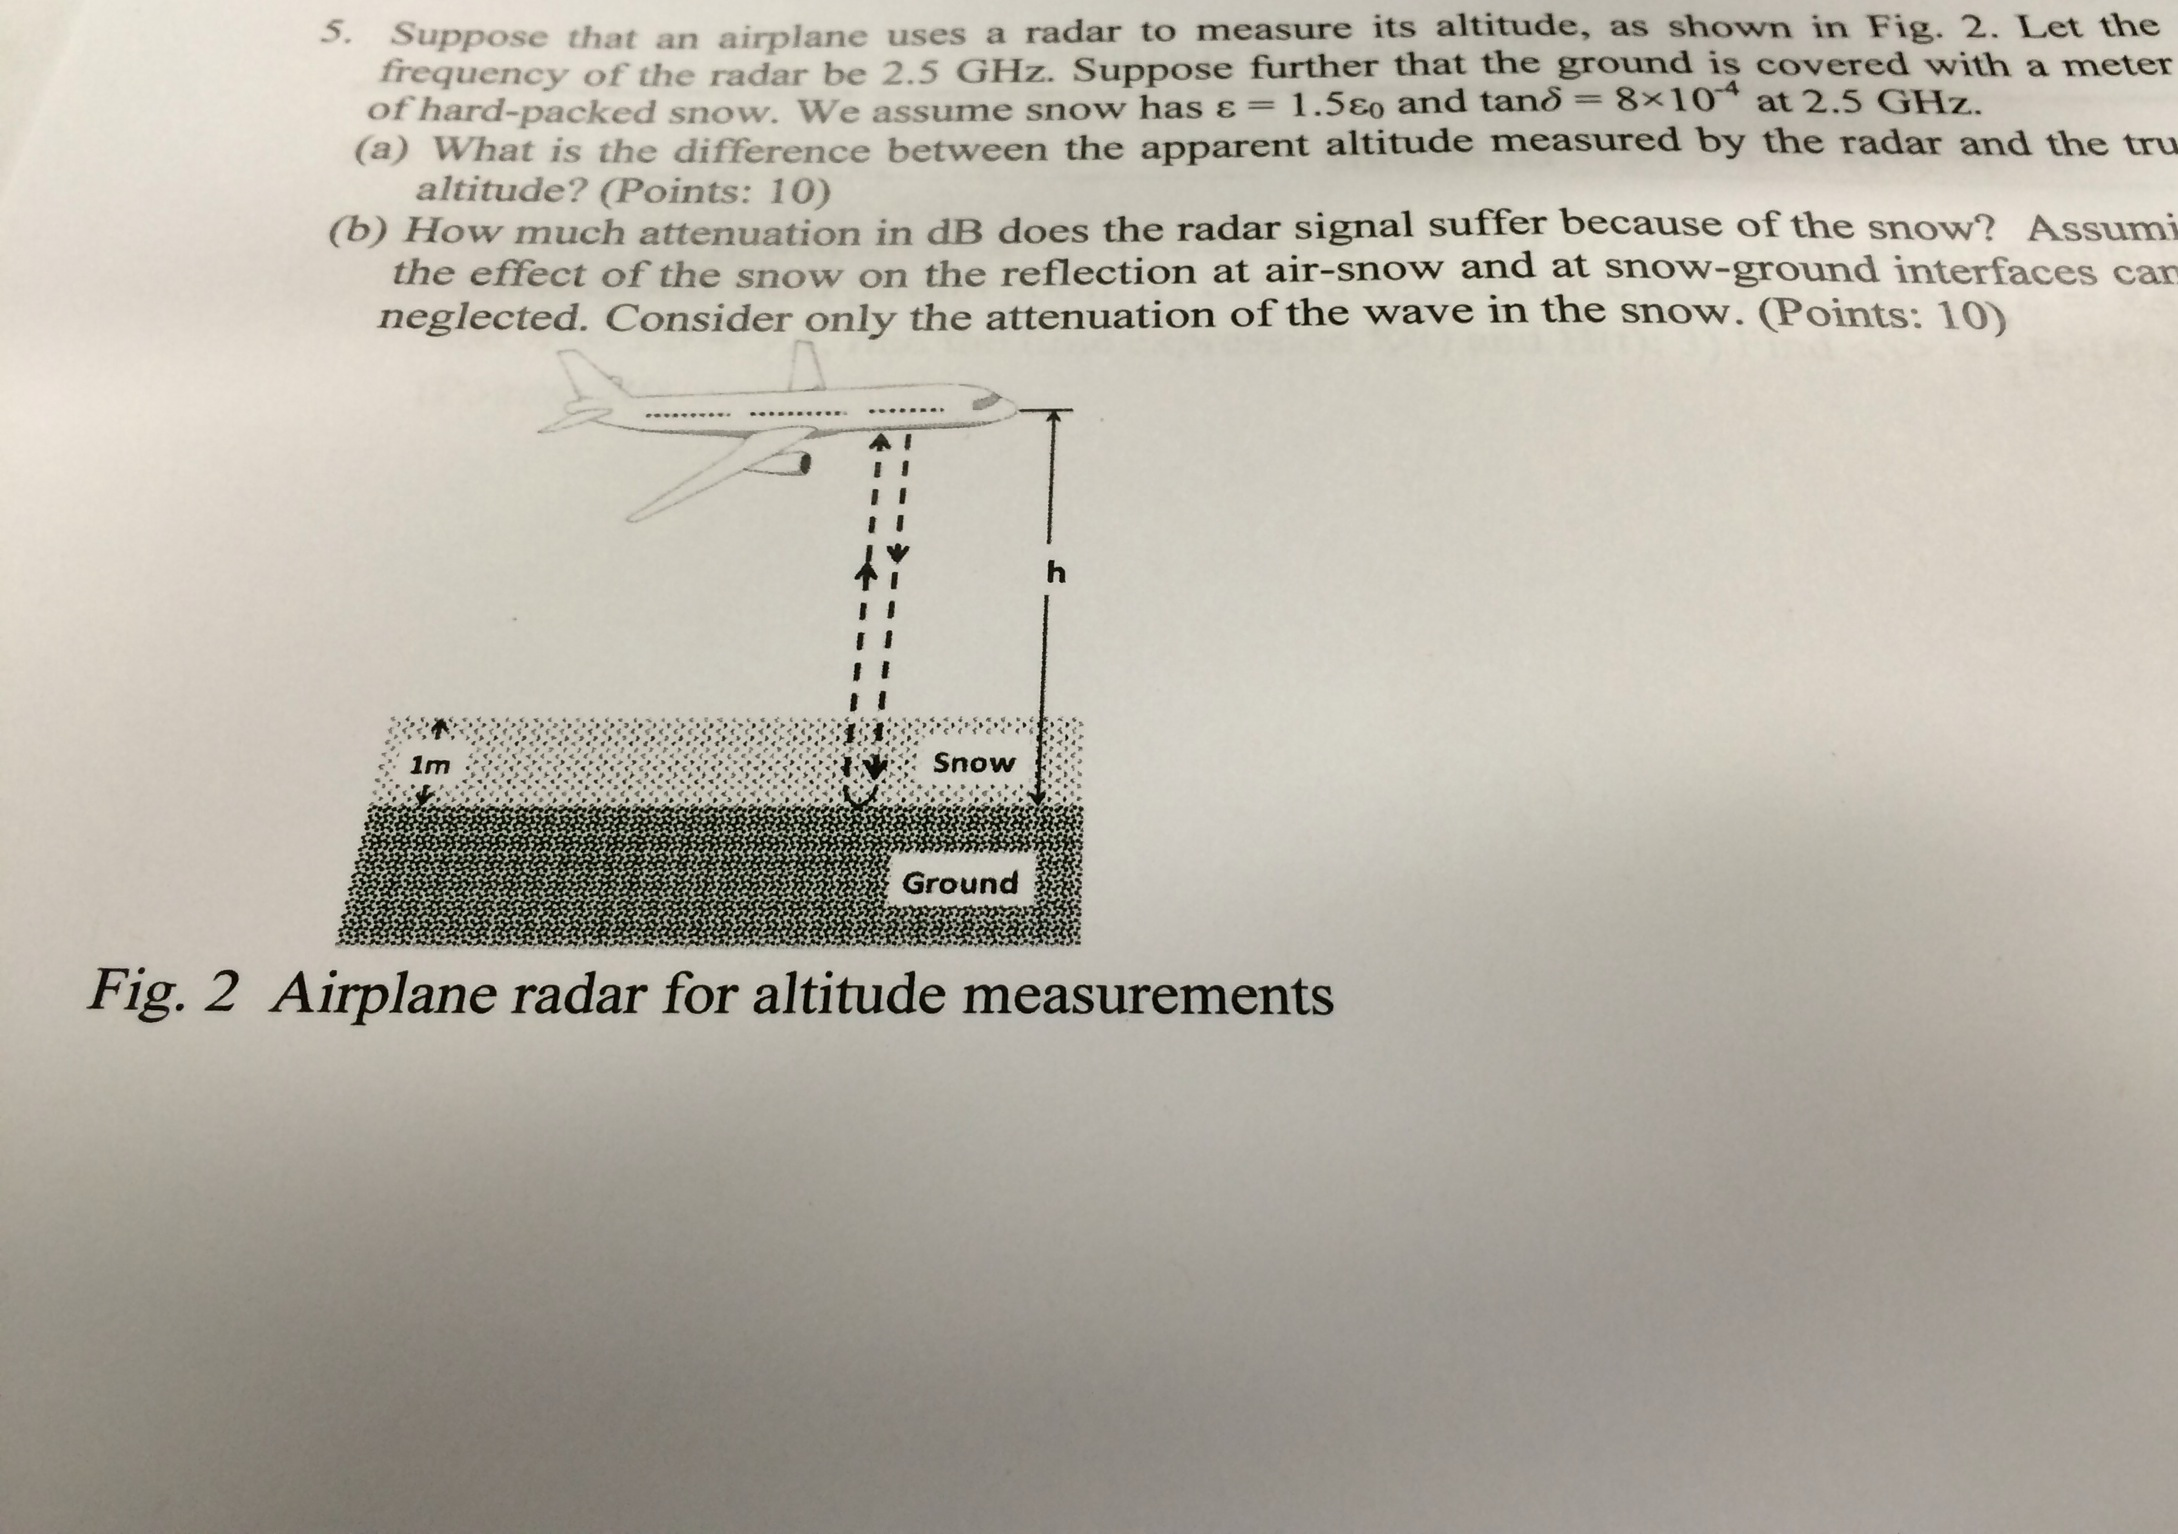 Suppose that an airplane uses a radar to measure